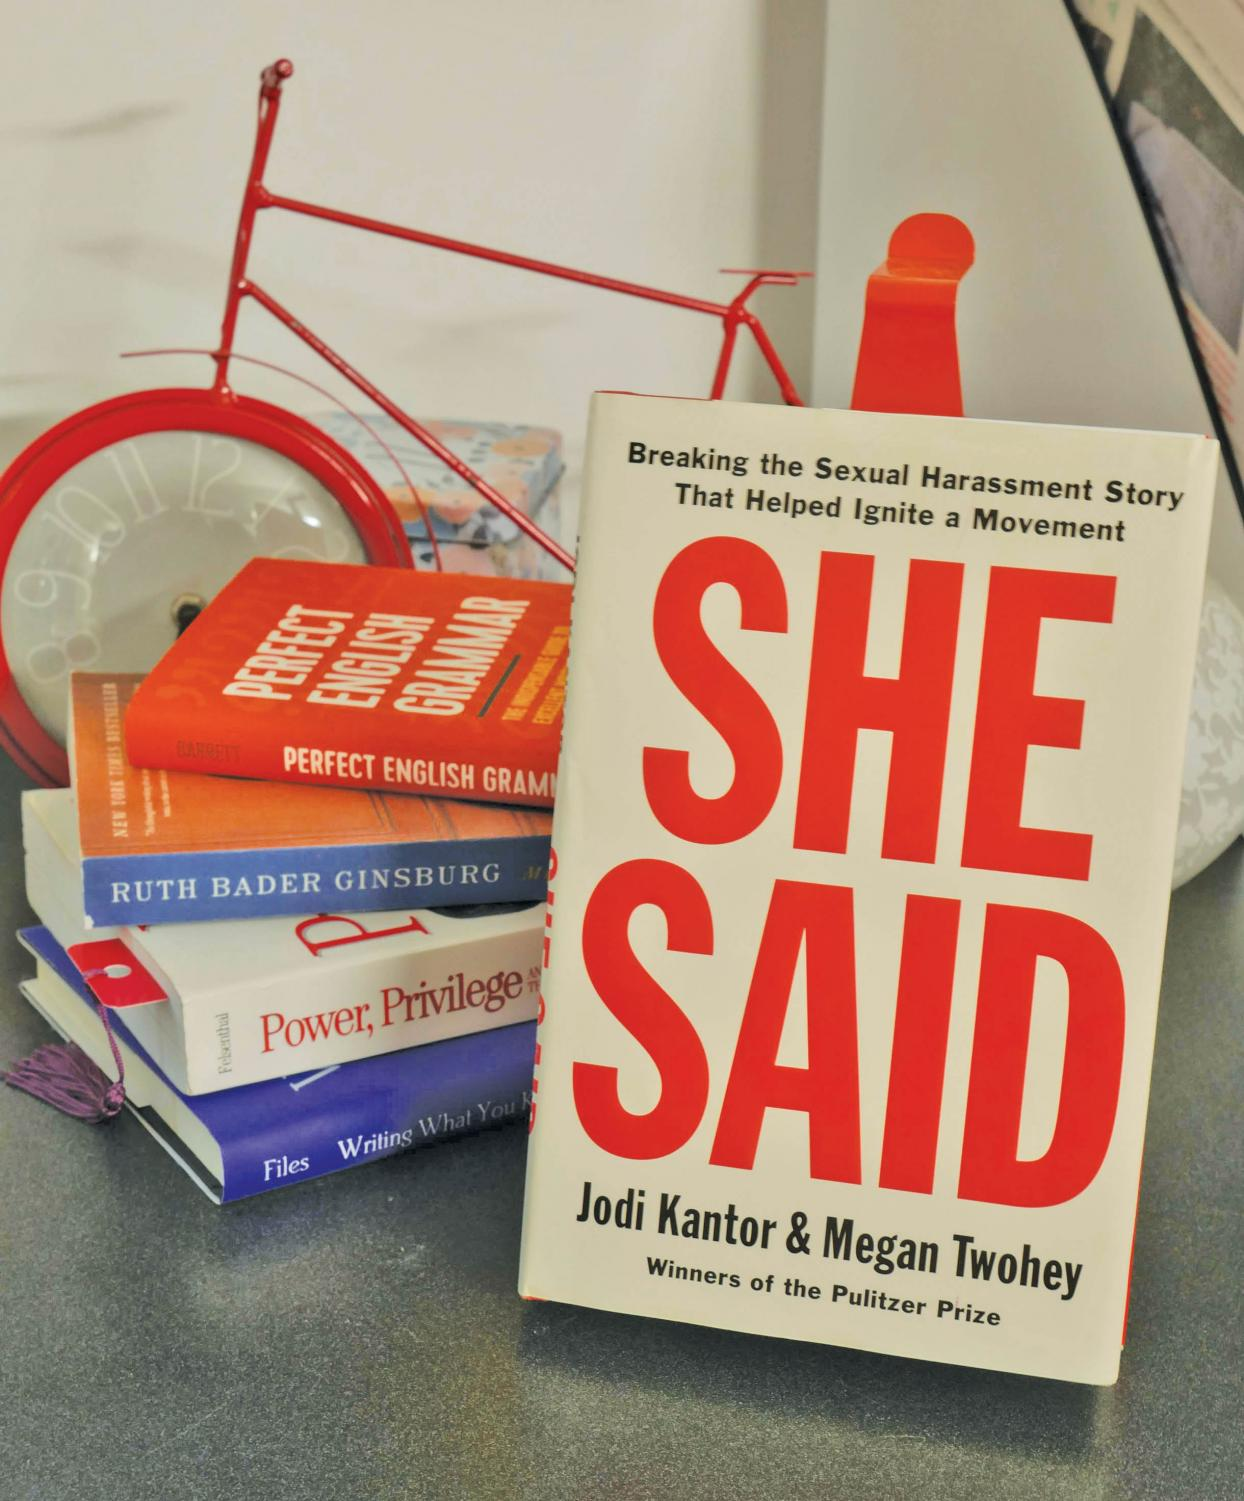 'She Said' was released Sept. 10 to rave reviews. Both Kantor and Twohey are New York Times reporters.